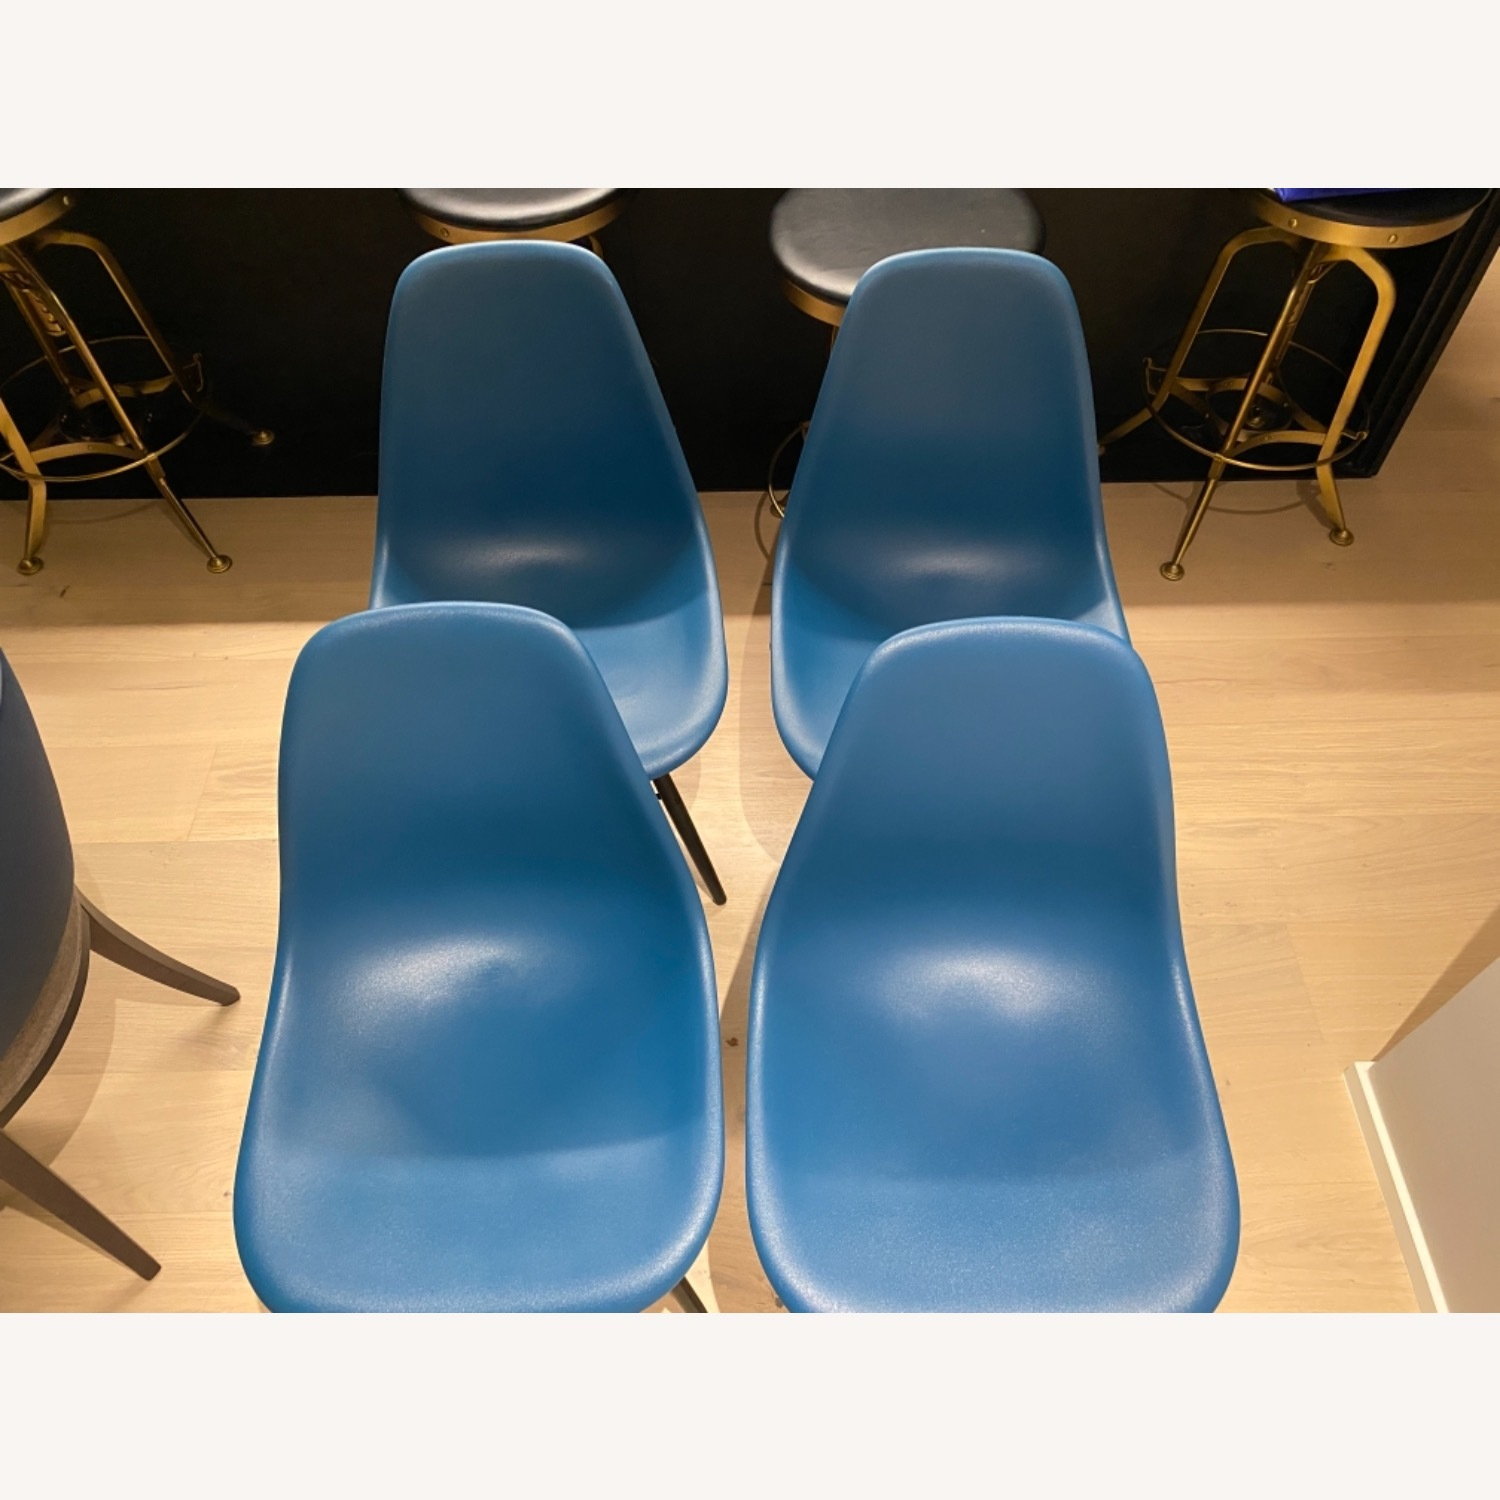 4 x Herman Miller Eames Molded Plastic Side Chair - image-21